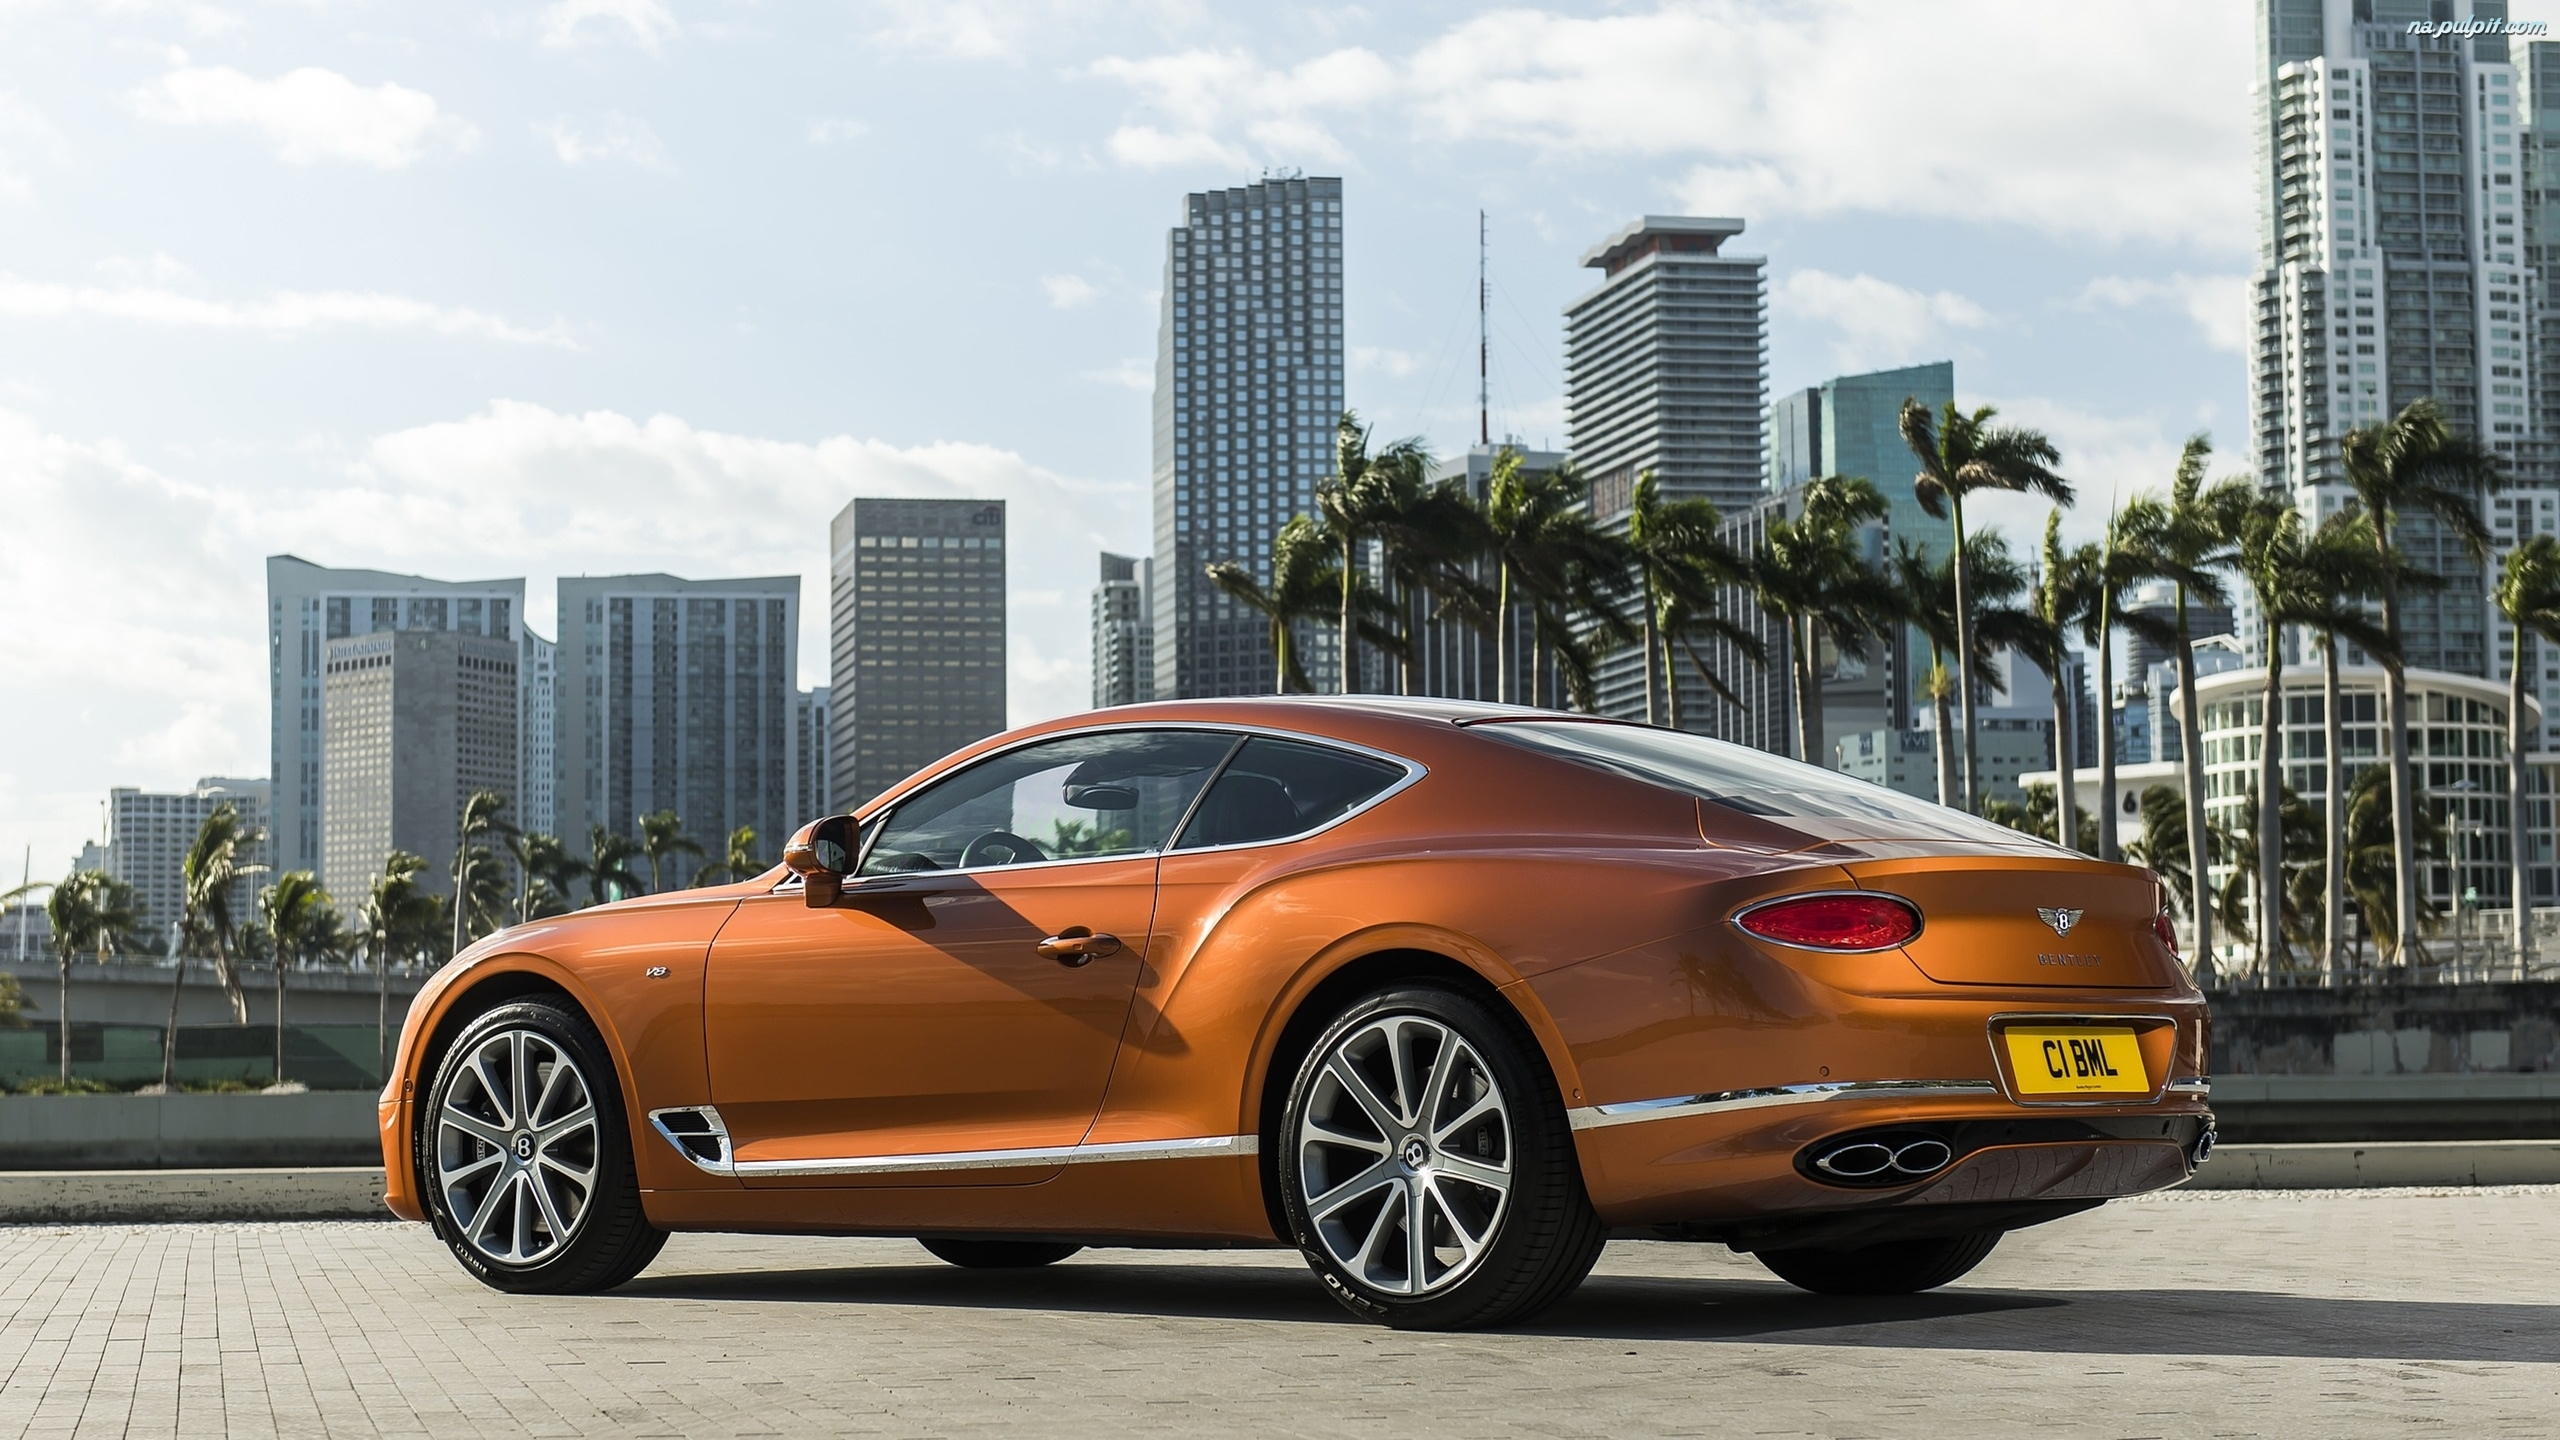 Bentley Continental GT V8 Coupe, Bok